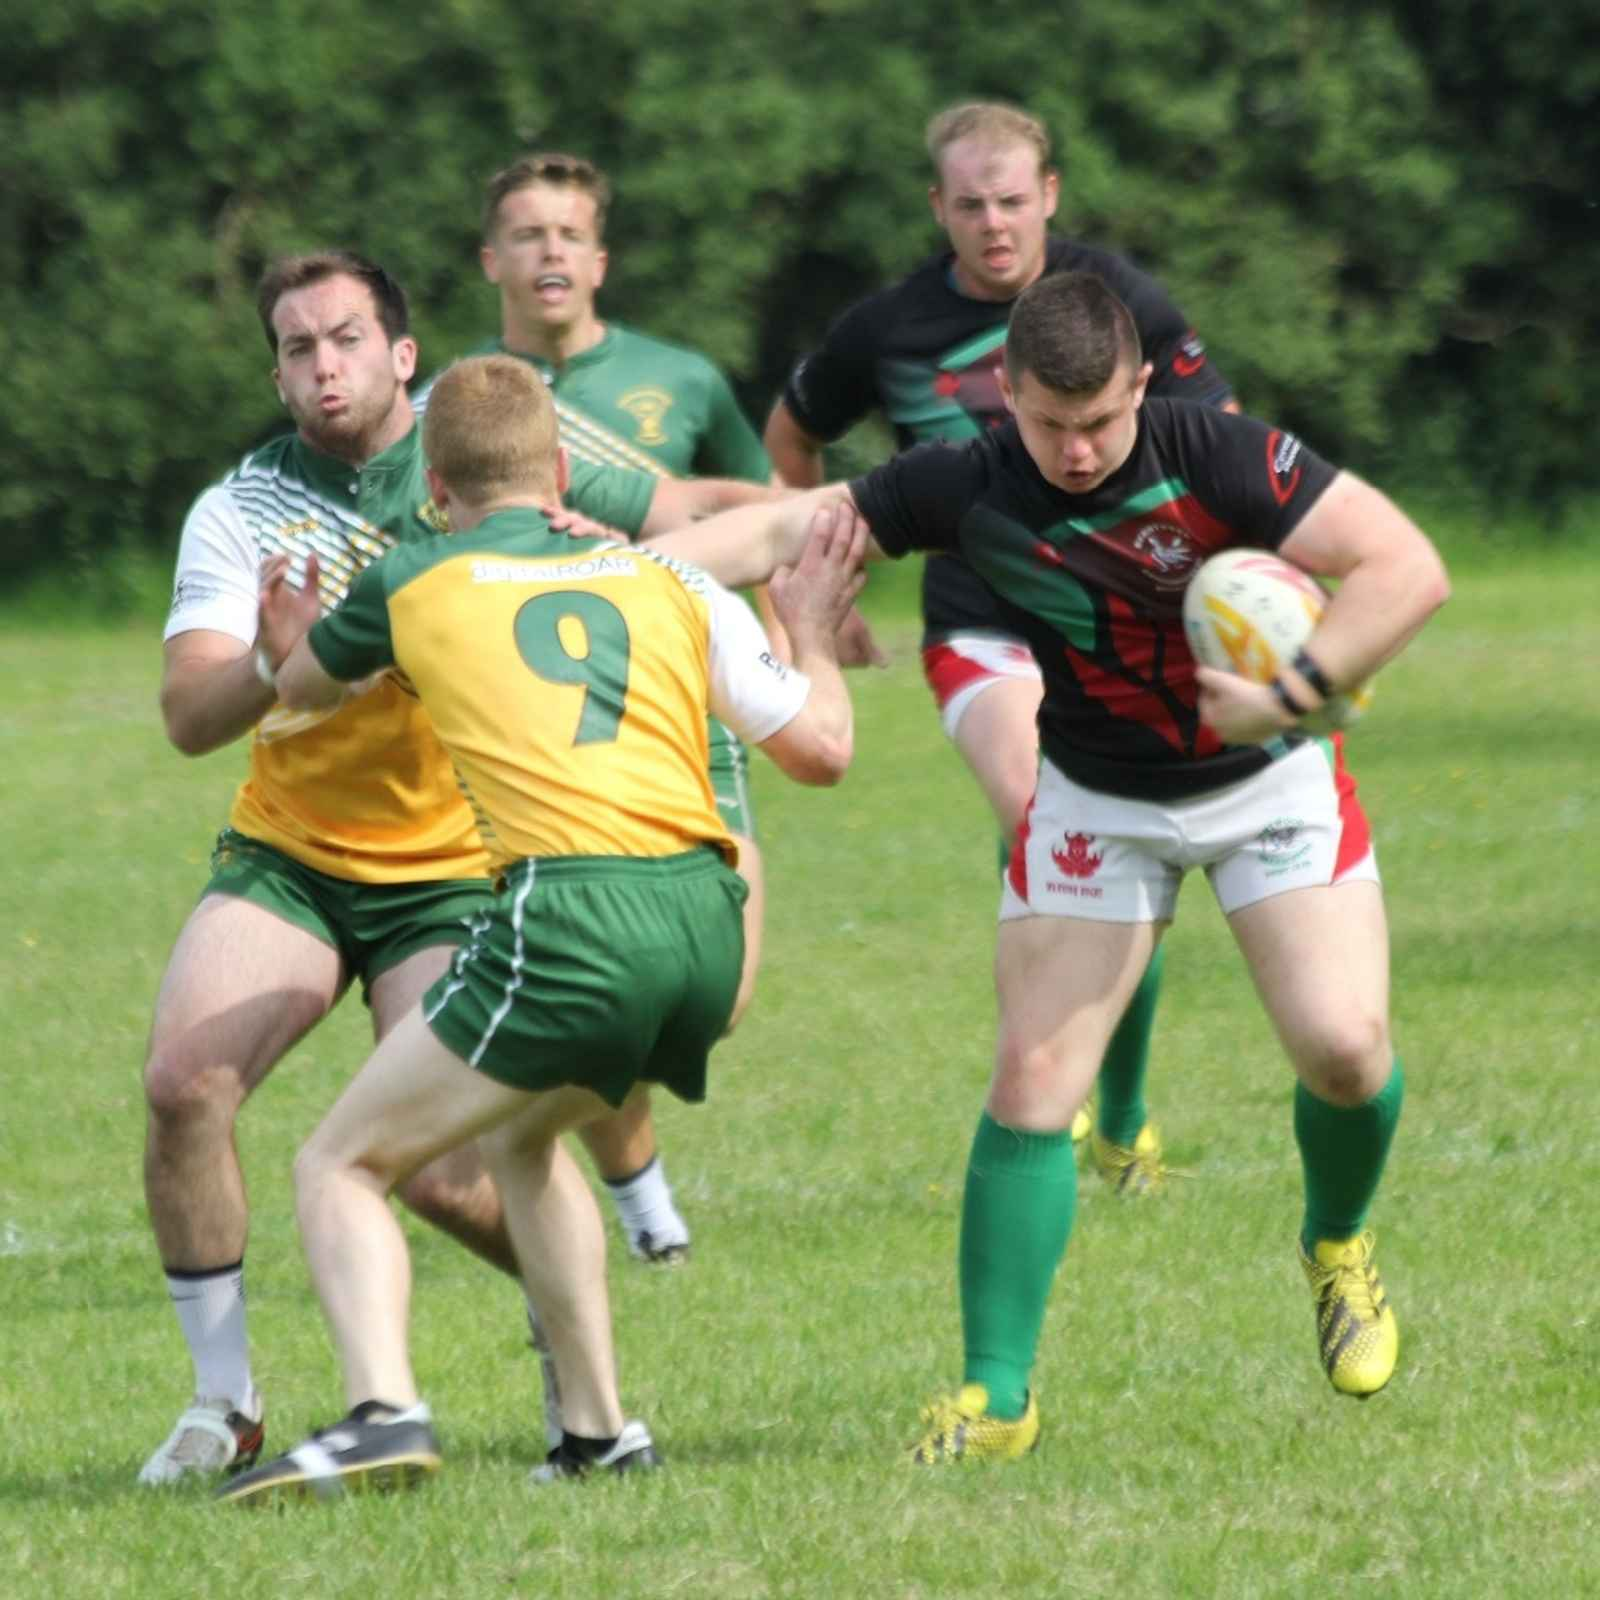 Burntwood Grasshoppers at Rugeley 7s